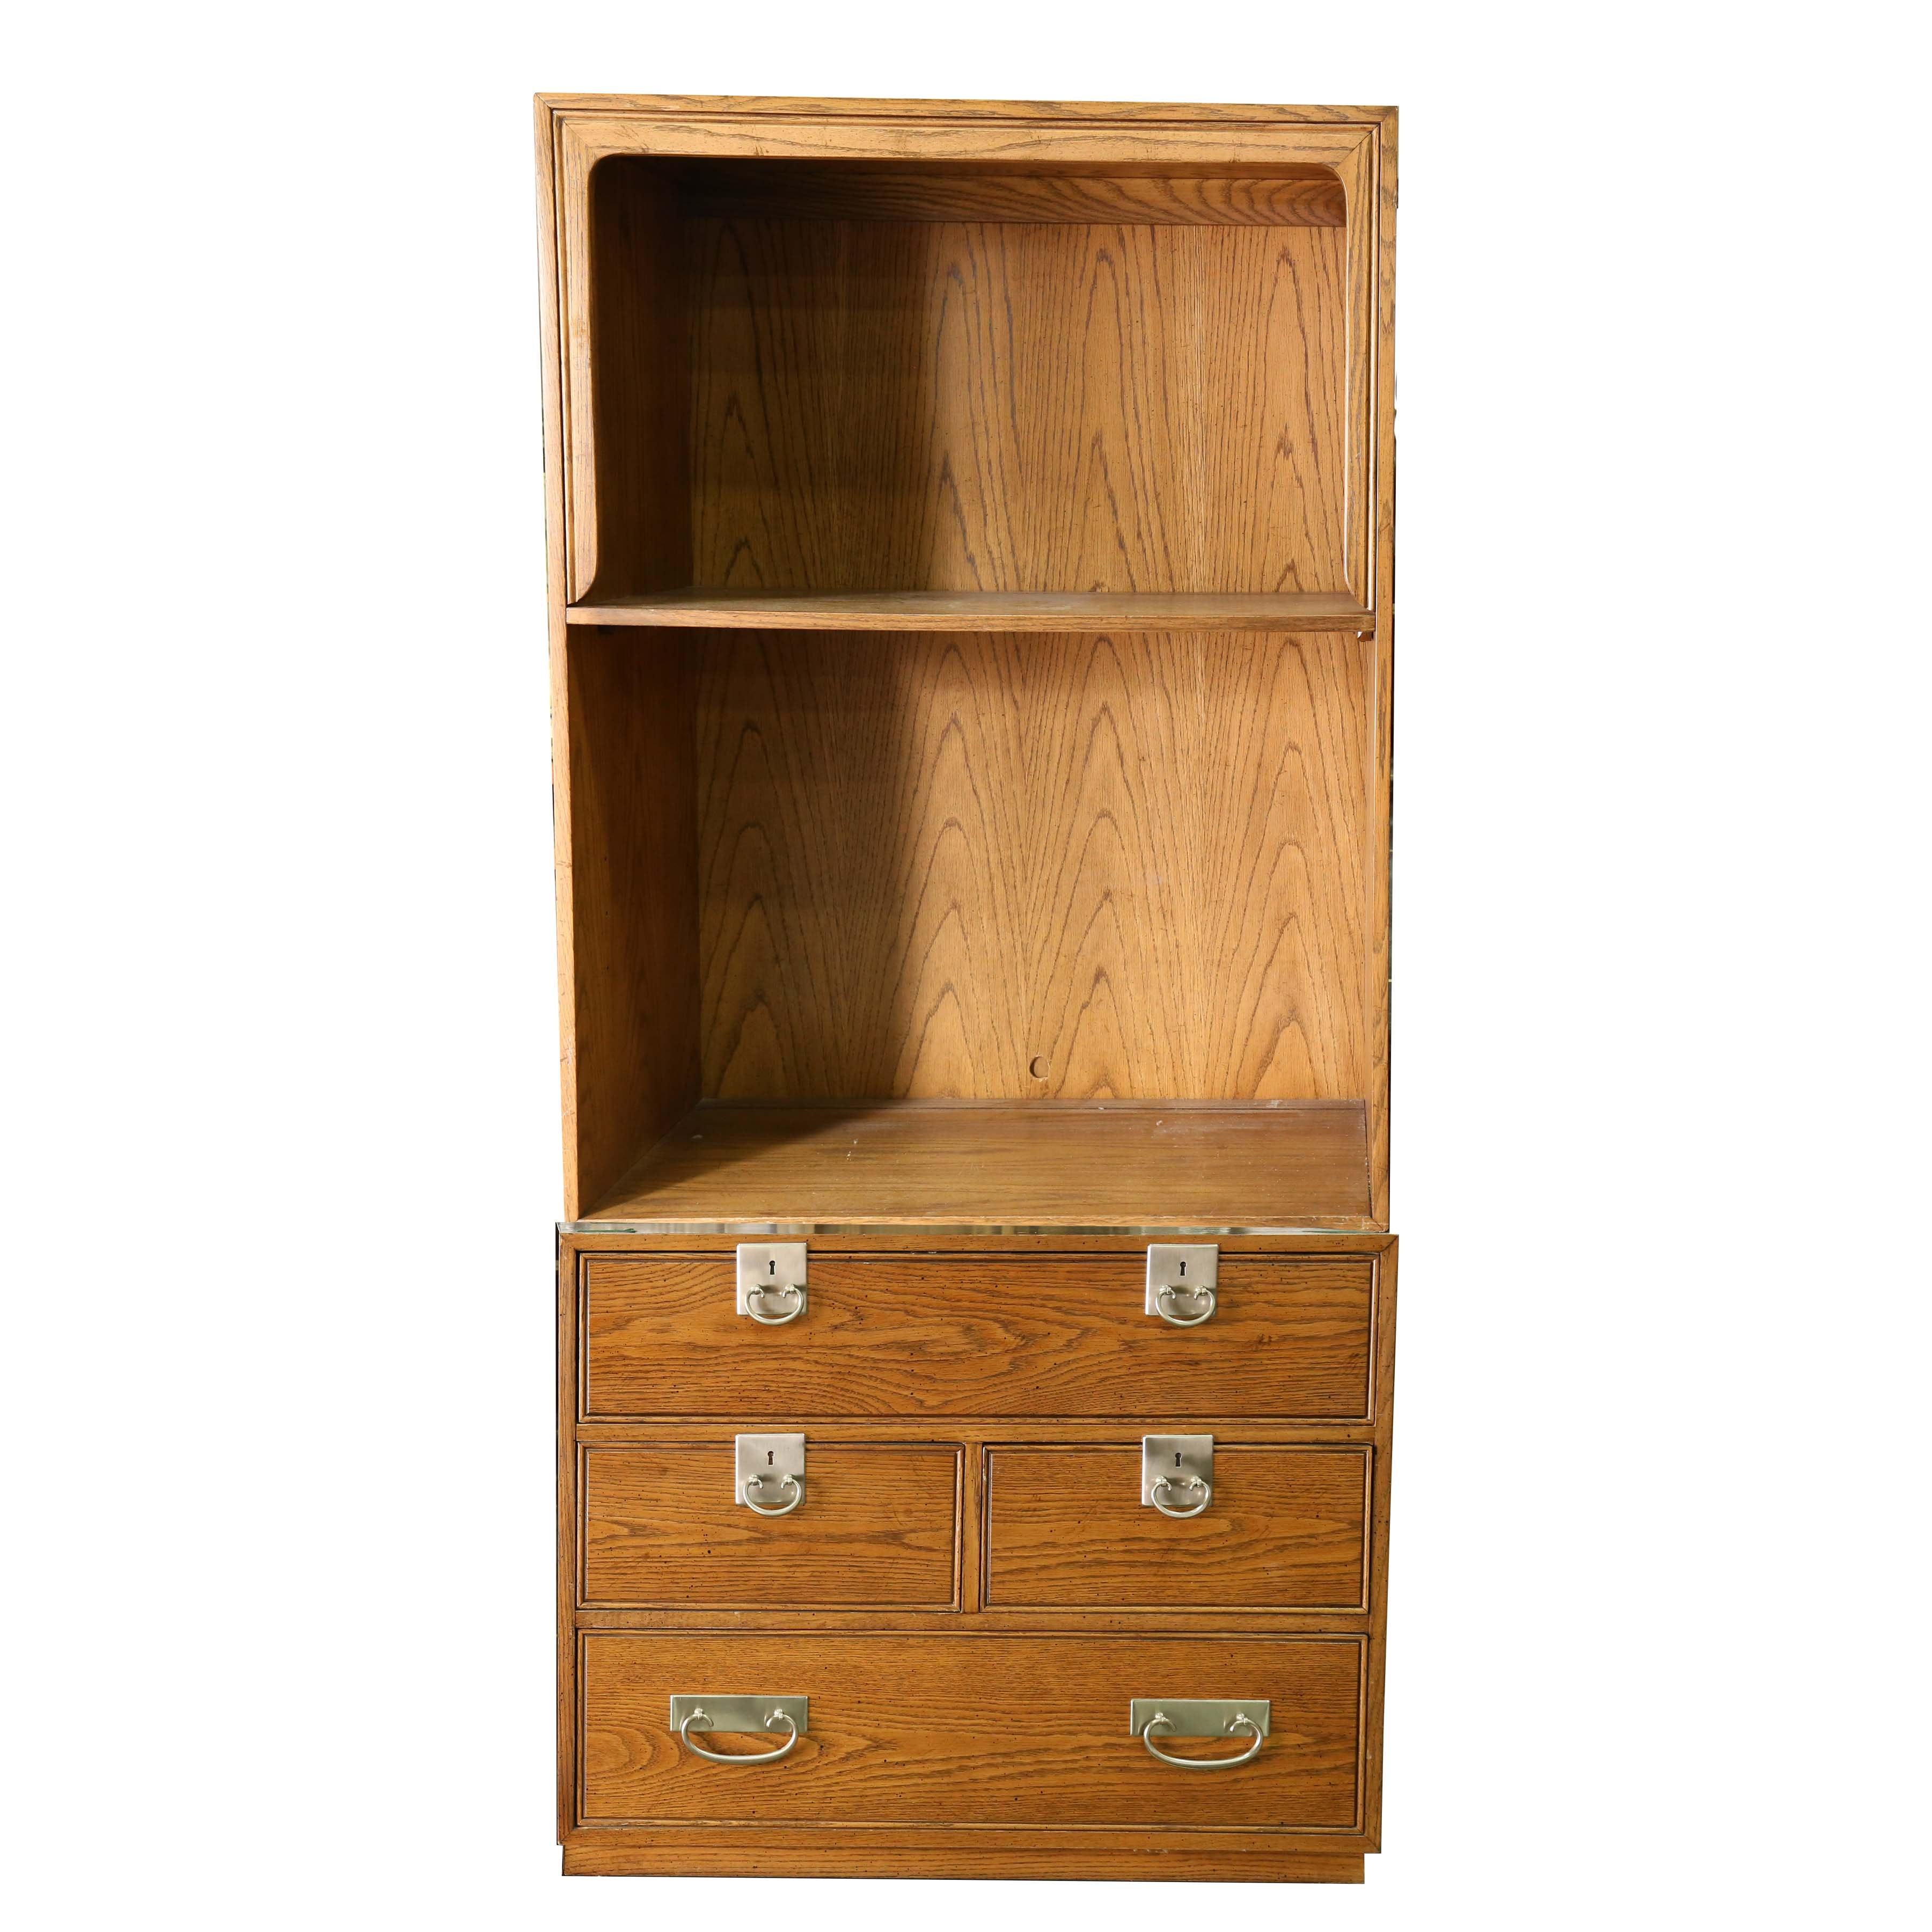 midcentury oak bookshelf with drawers by founders